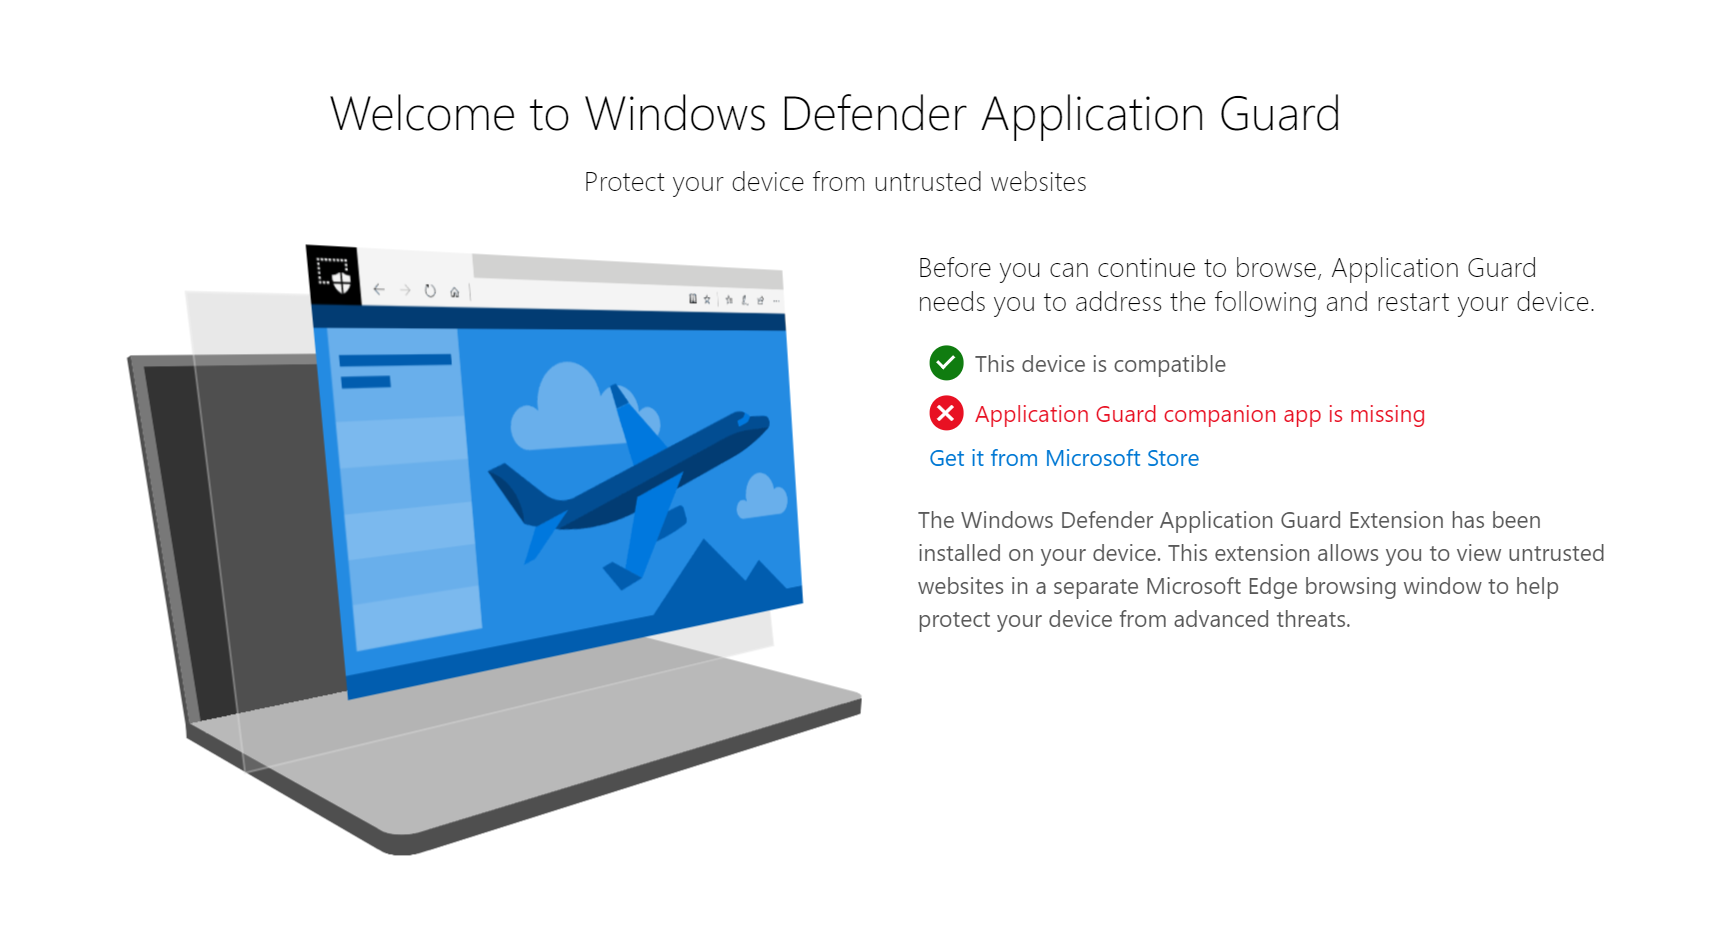 Turn On or Off Camera and Mic in Application Guard for Microsoft Edge windows-defender-application-guard-components-not-complete.png